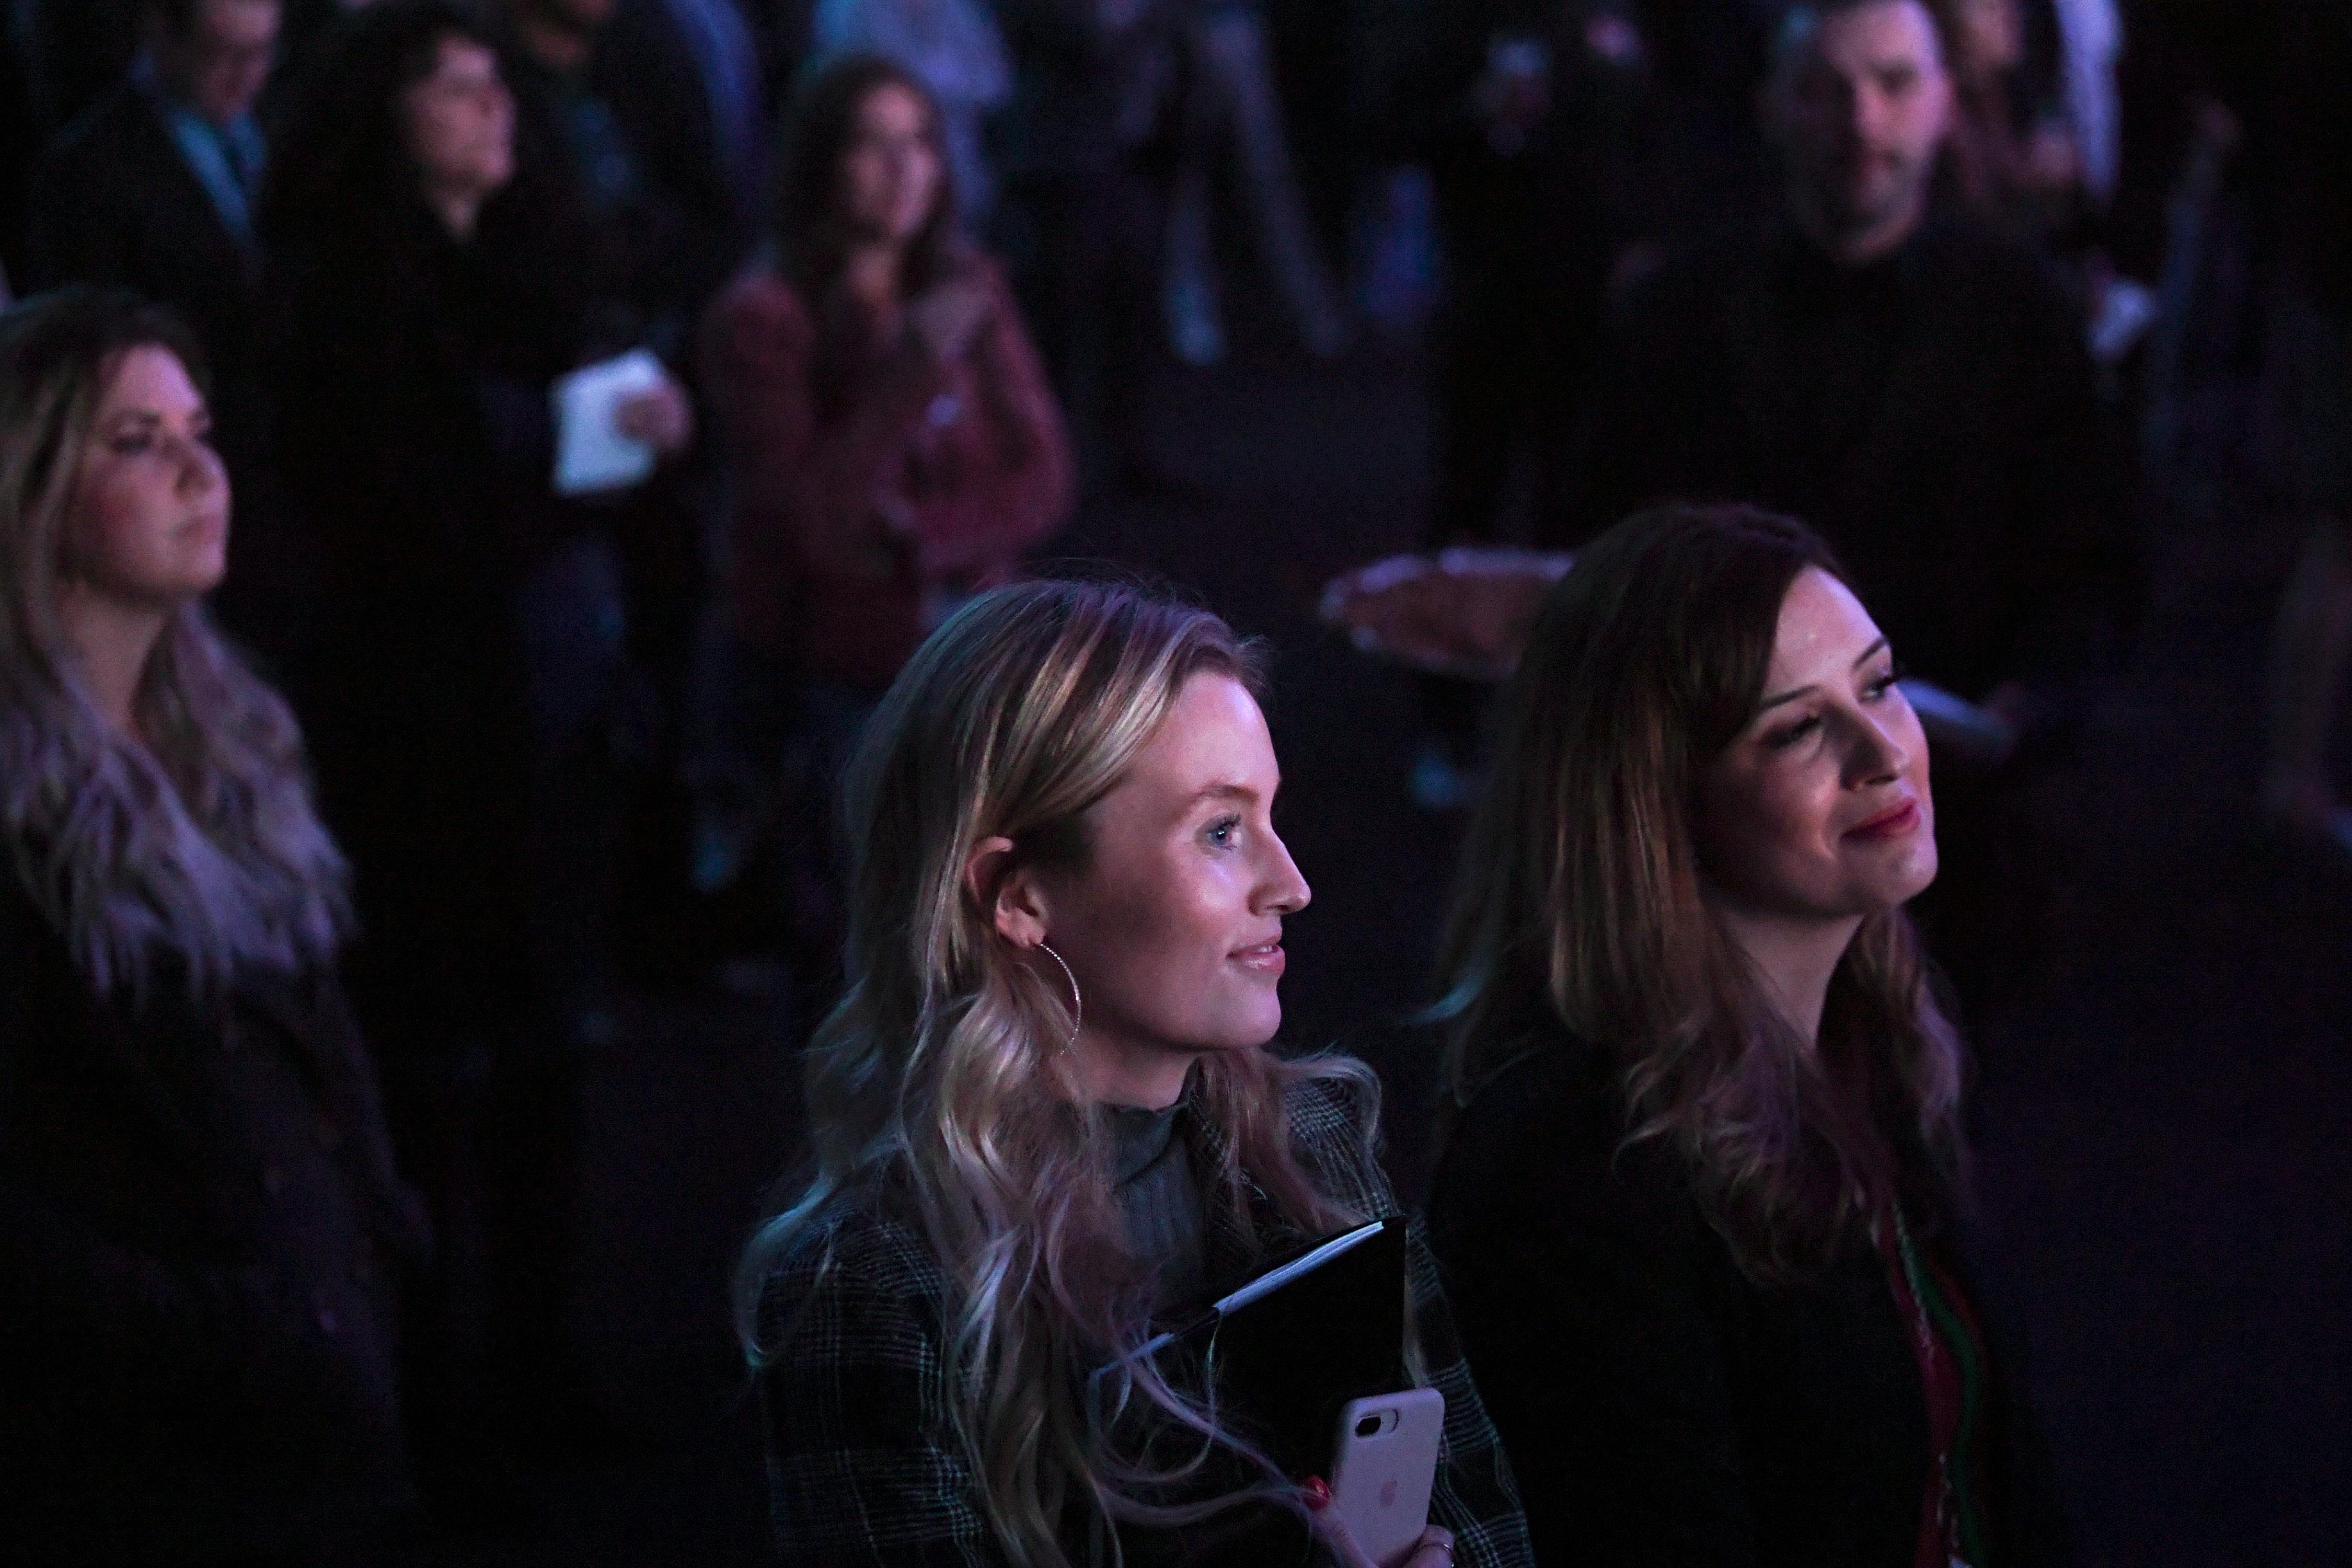 Invited guests watch a presentation during the unveiling of Derek Stevens' new project for Fremont Street, Circa Resort & Casino, Thursday, Jan 10, 2019, at the Downtown Las Vegas Events Center. (Sam Morris/Las Vegas News Bureau)